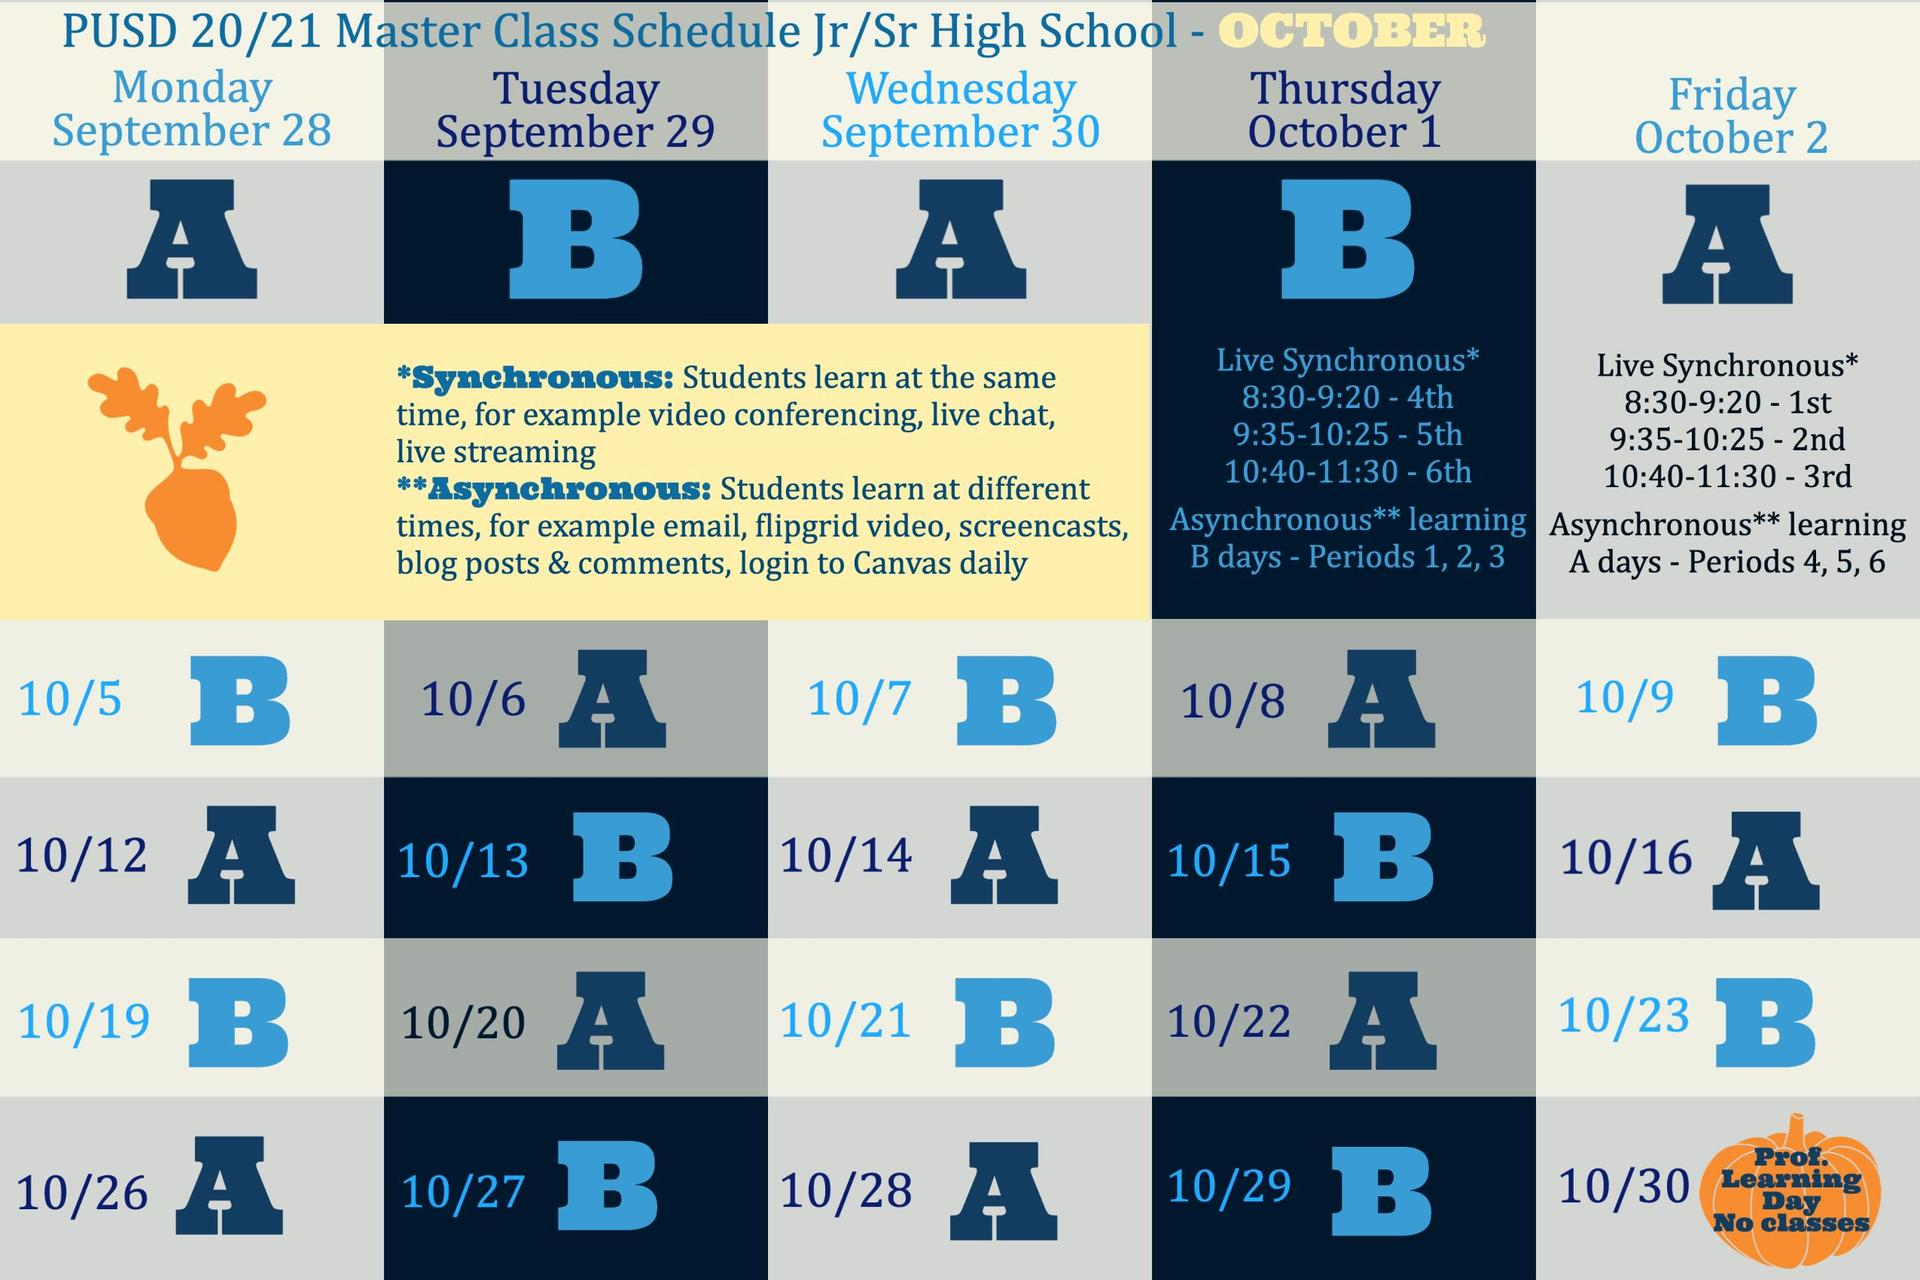 HS Master A/B Schedule October 2020